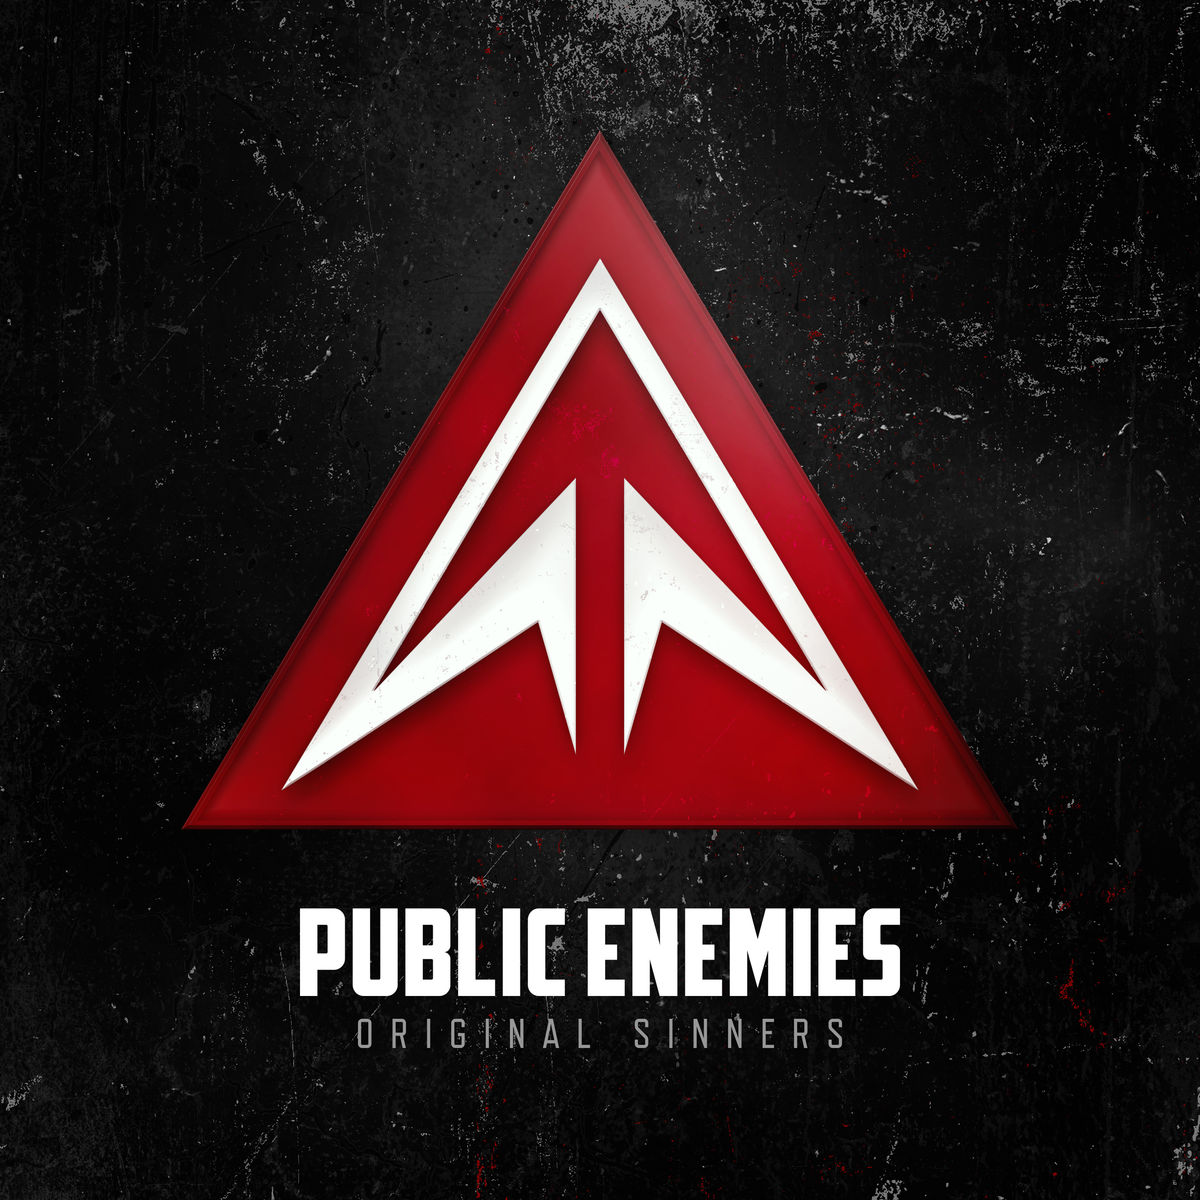 Public Enemies - Original Sinners